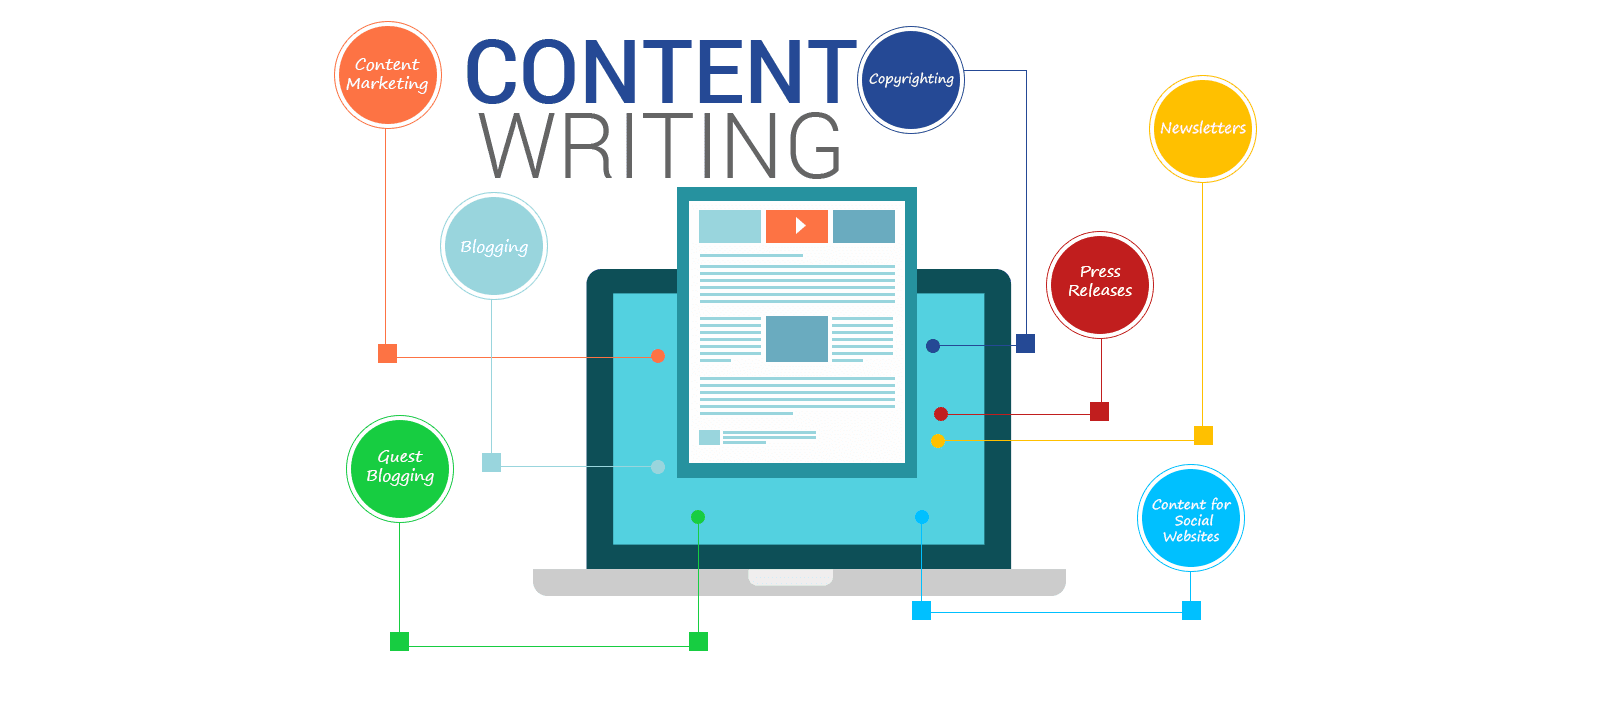 Marketing transparent content writing. Company services in india